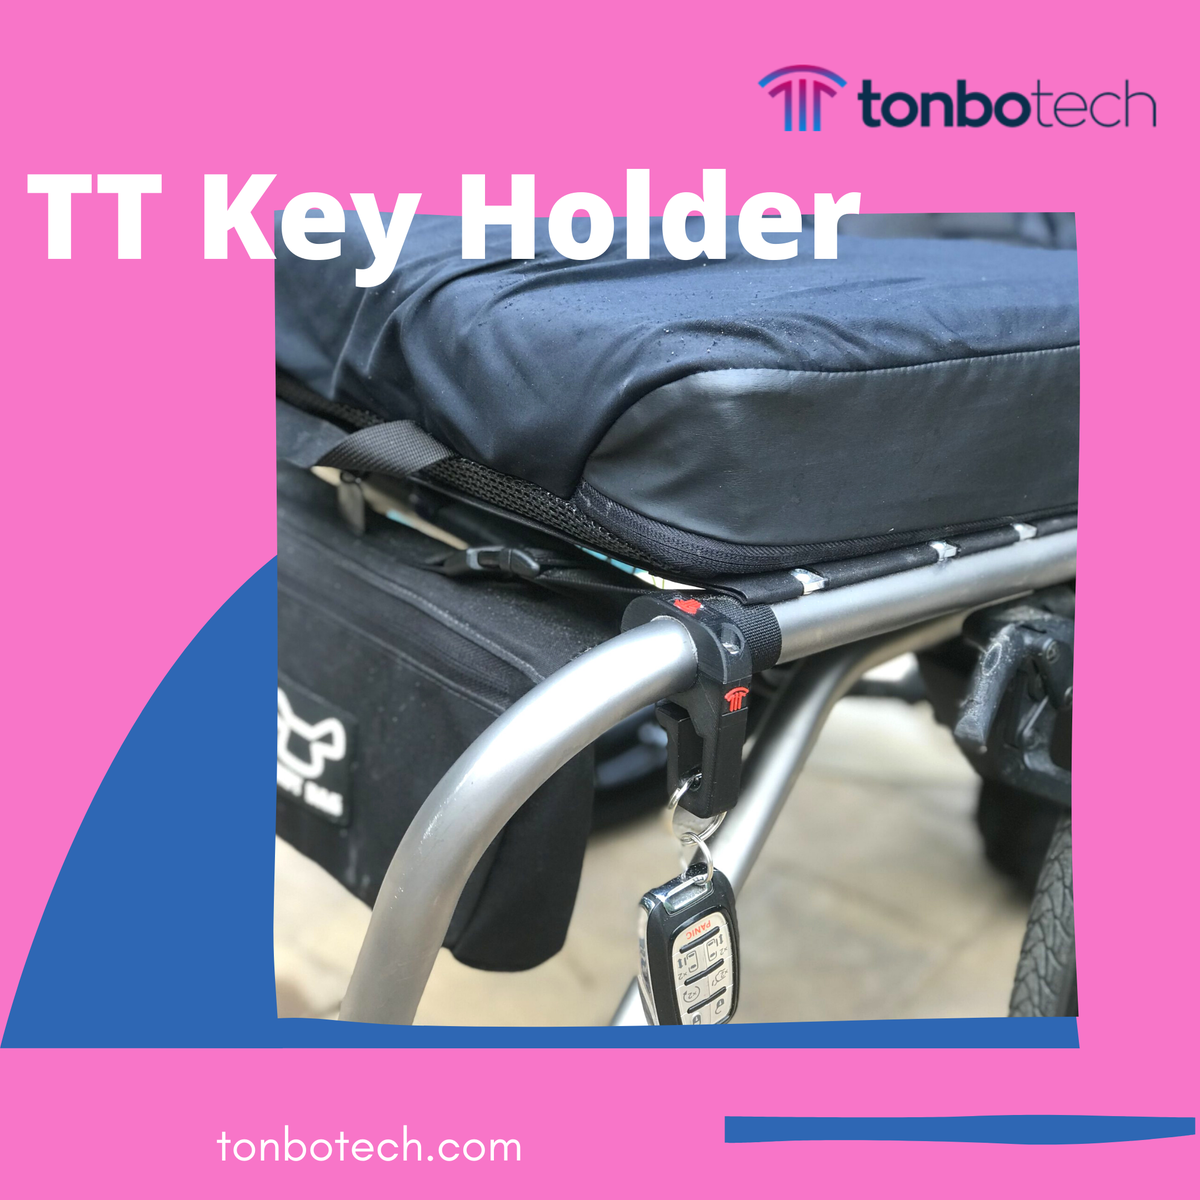 Tonbo Tech has designed a keyholder system to secure your keys while always keeping them handy.   Email us at info@tonbotech.com.  #wheelchairmodel #wheelchairsolutions #wheelchairlifestyle #wheelchairboy #design #dprinting #dprint #wheelchair #wheelchairlife #keyholder #usa https://t.co/w3njggTtjc